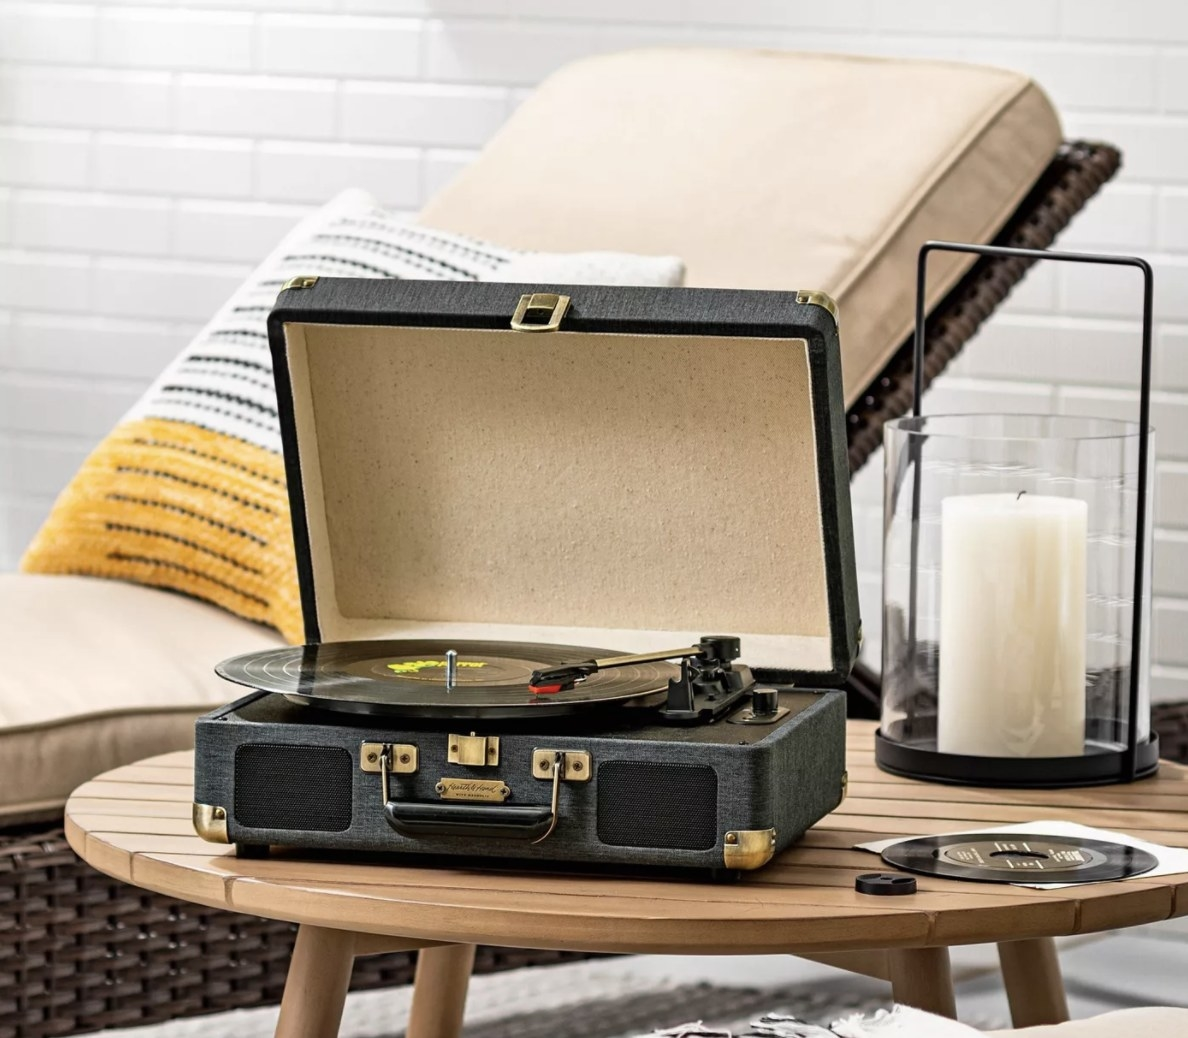 The black suitcase has a record player on the inside and is set atop a wooden table